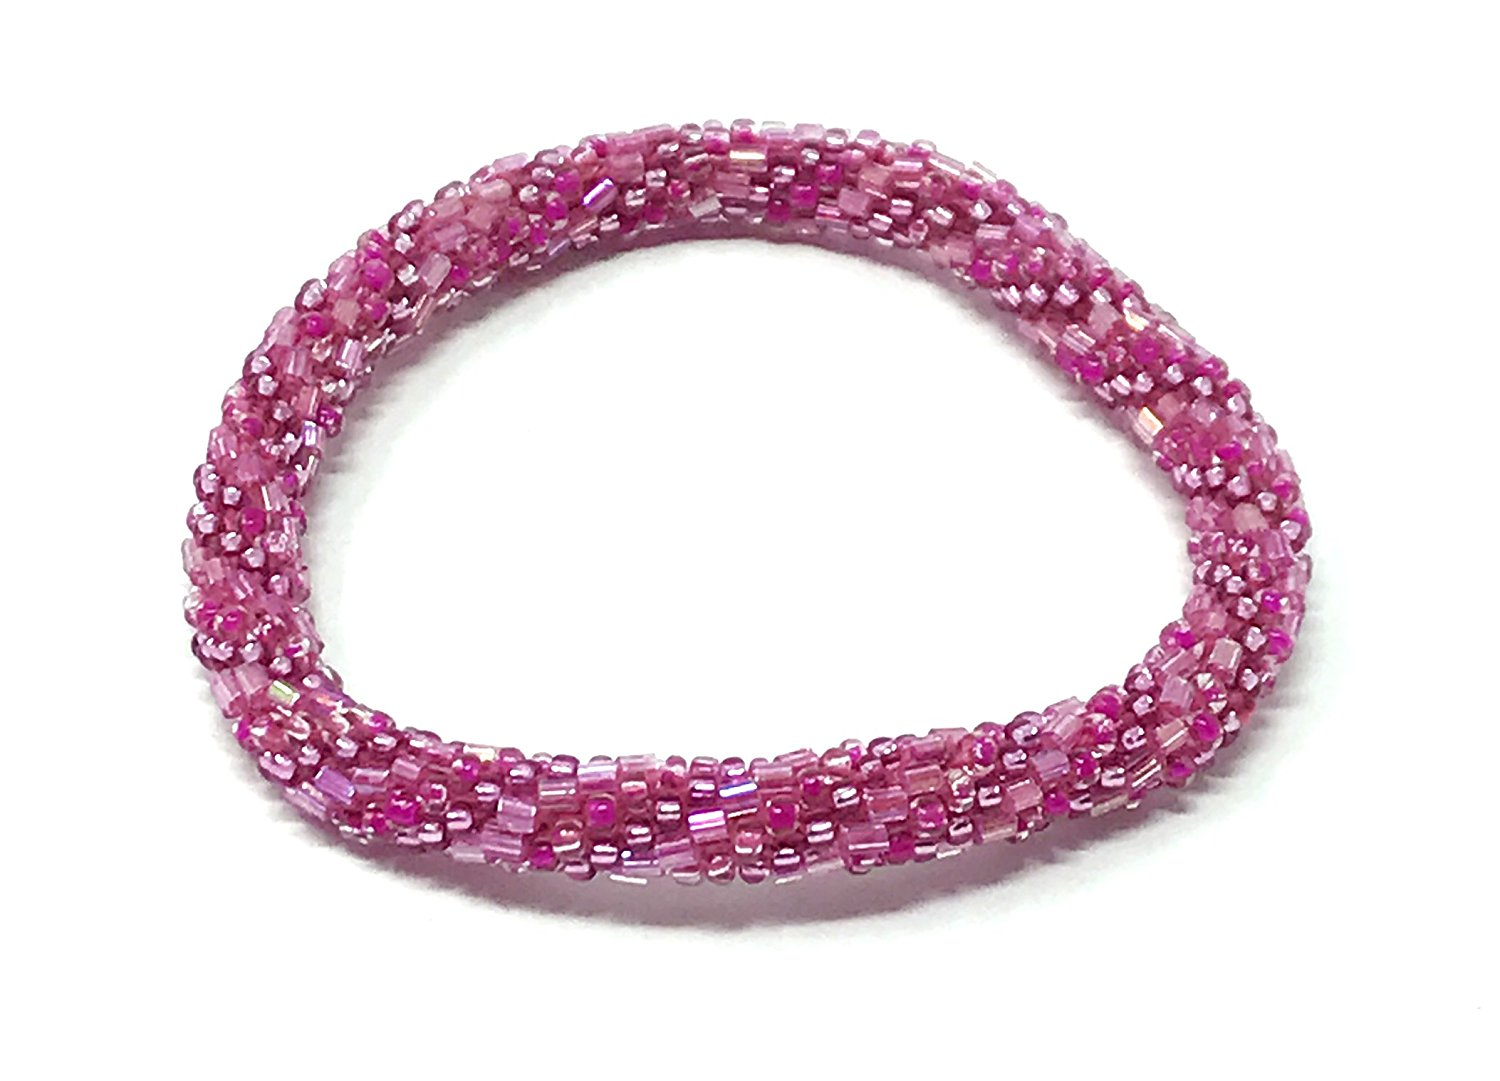 8de6b8a6cec3 Get Quotations · WigsPedia Crochet Glass Seed Bead Nepal Roll on Boho  Bracelet - Pink001